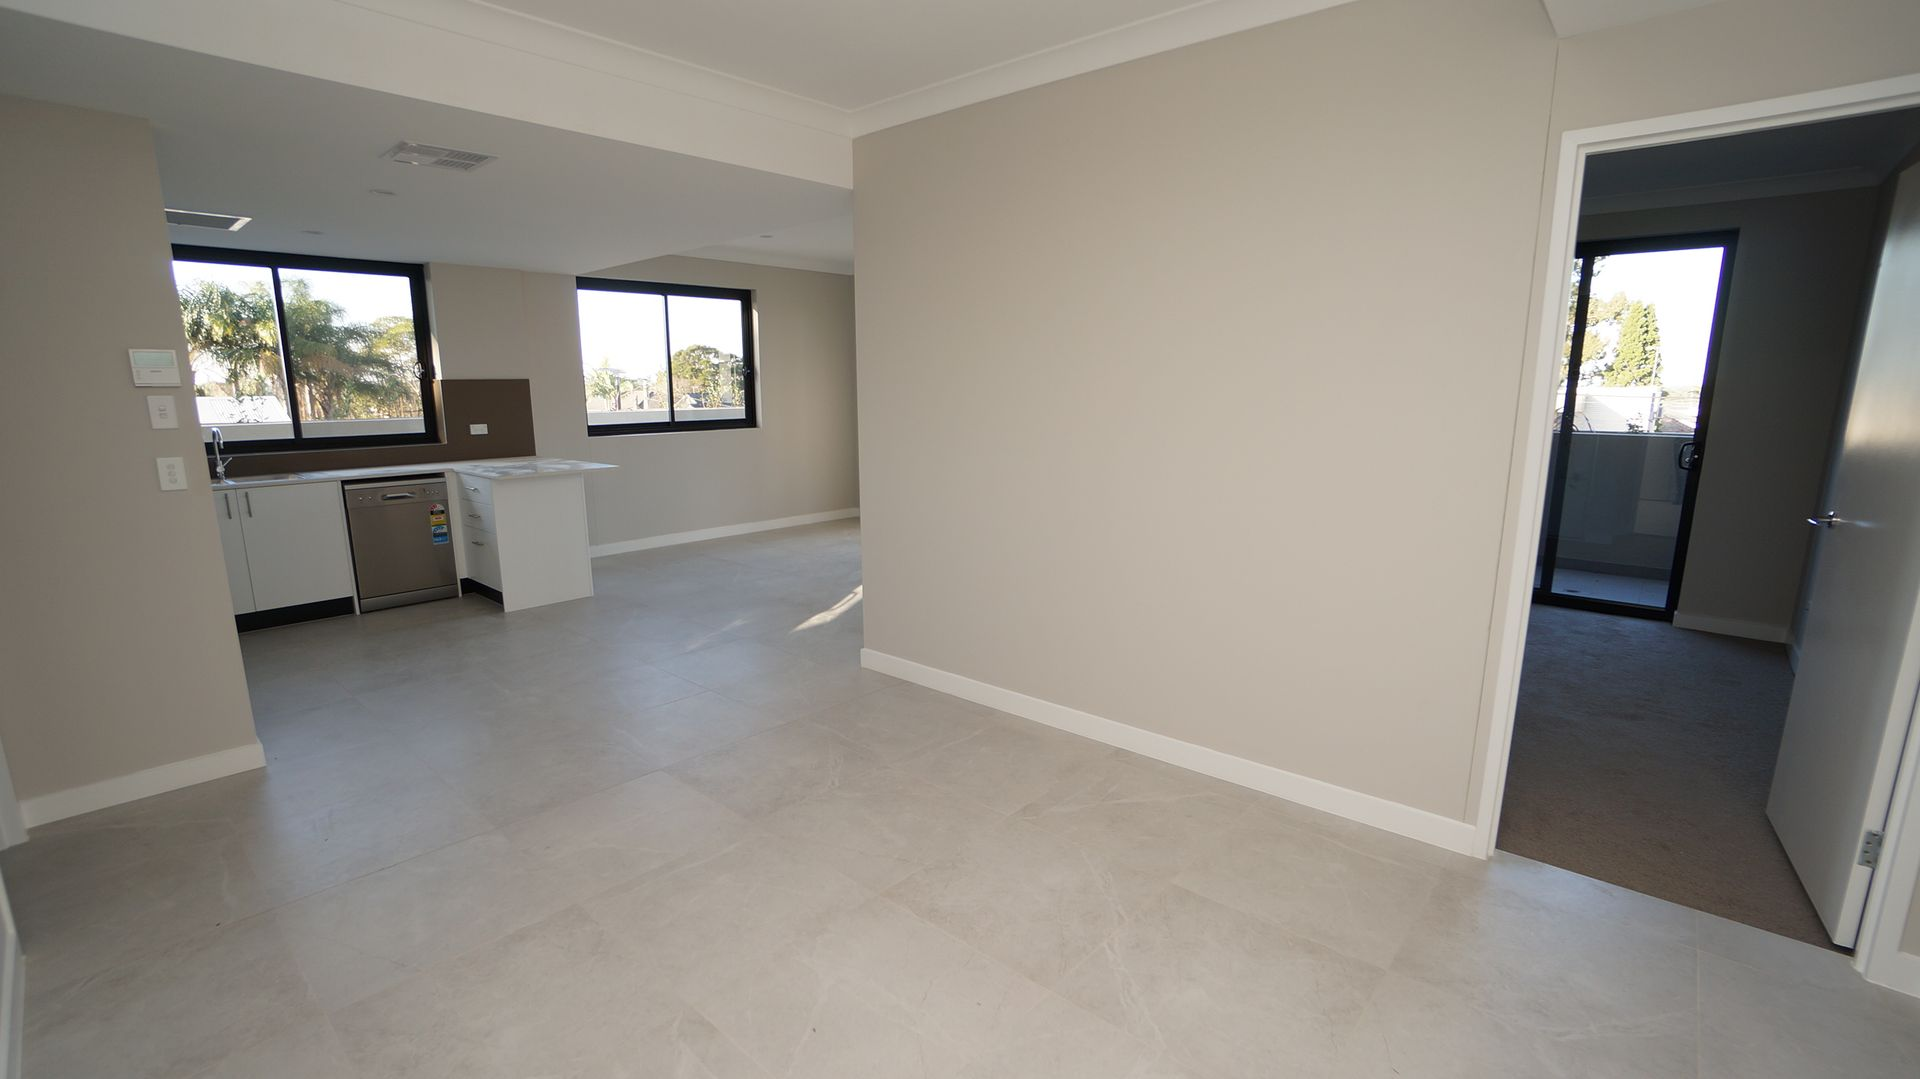 104/45-47 PEEL STREET, Canley Heights NSW 2166, Image 2